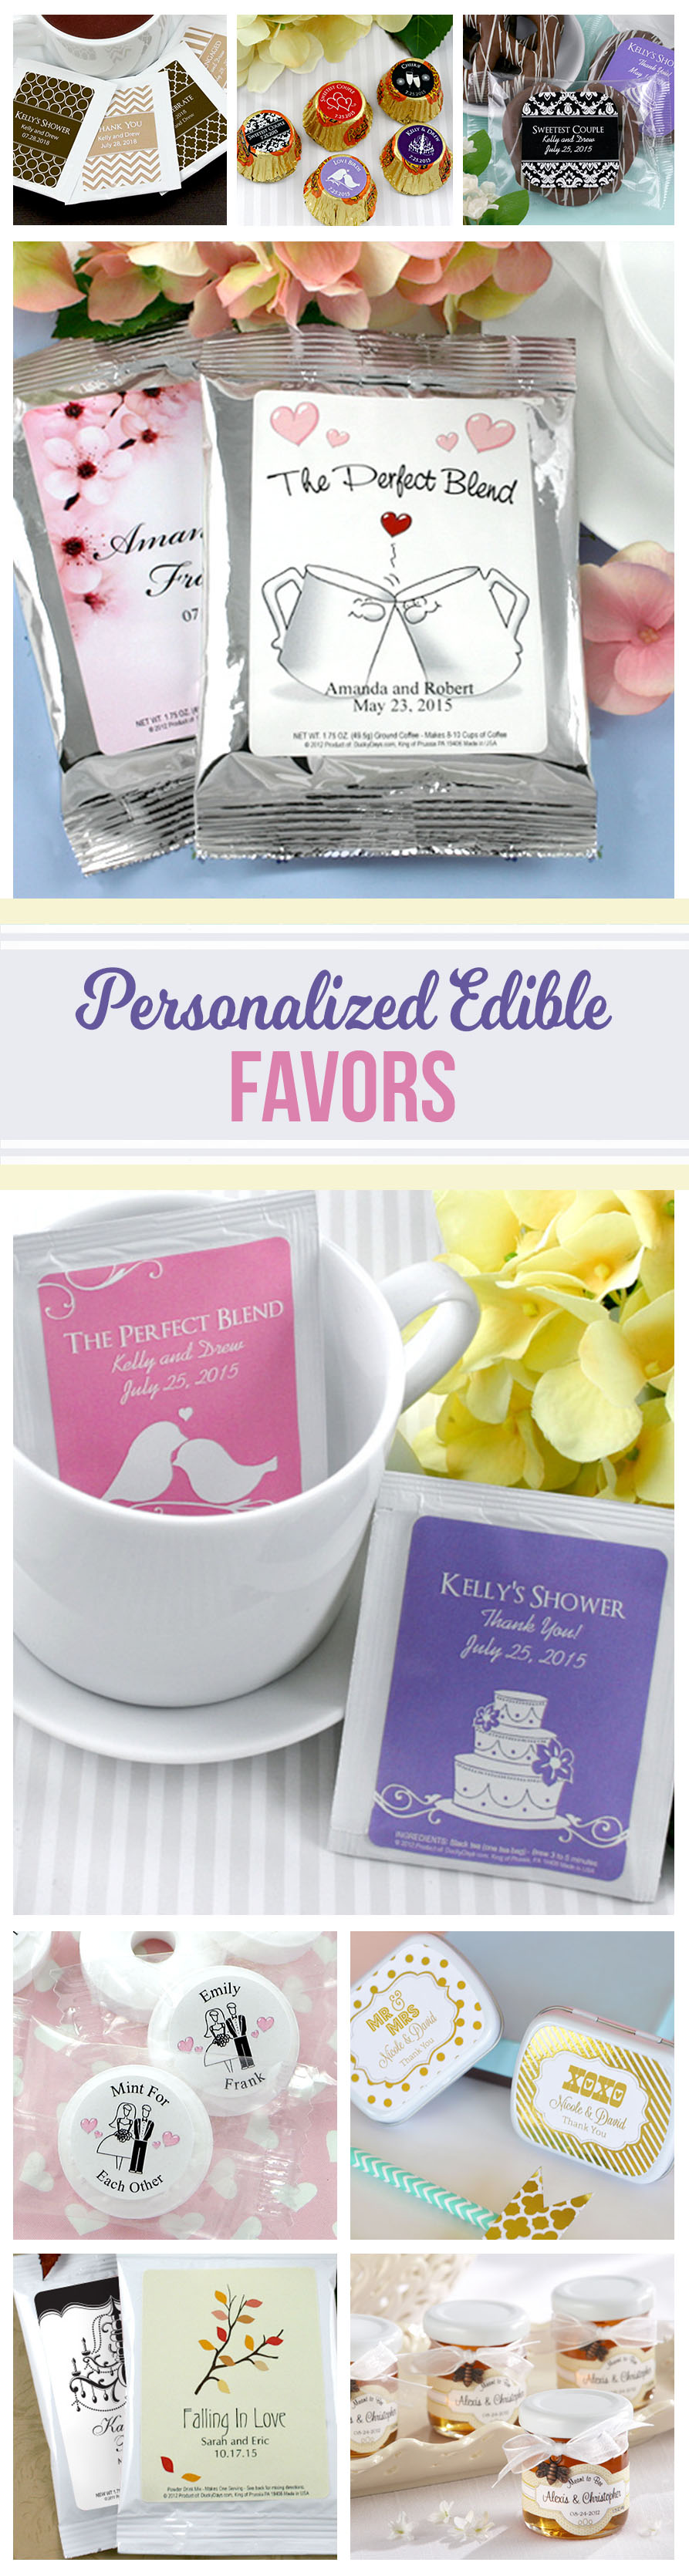 Affordable Personalized Edible Wedding or Bridal Shower Favors ideas ...